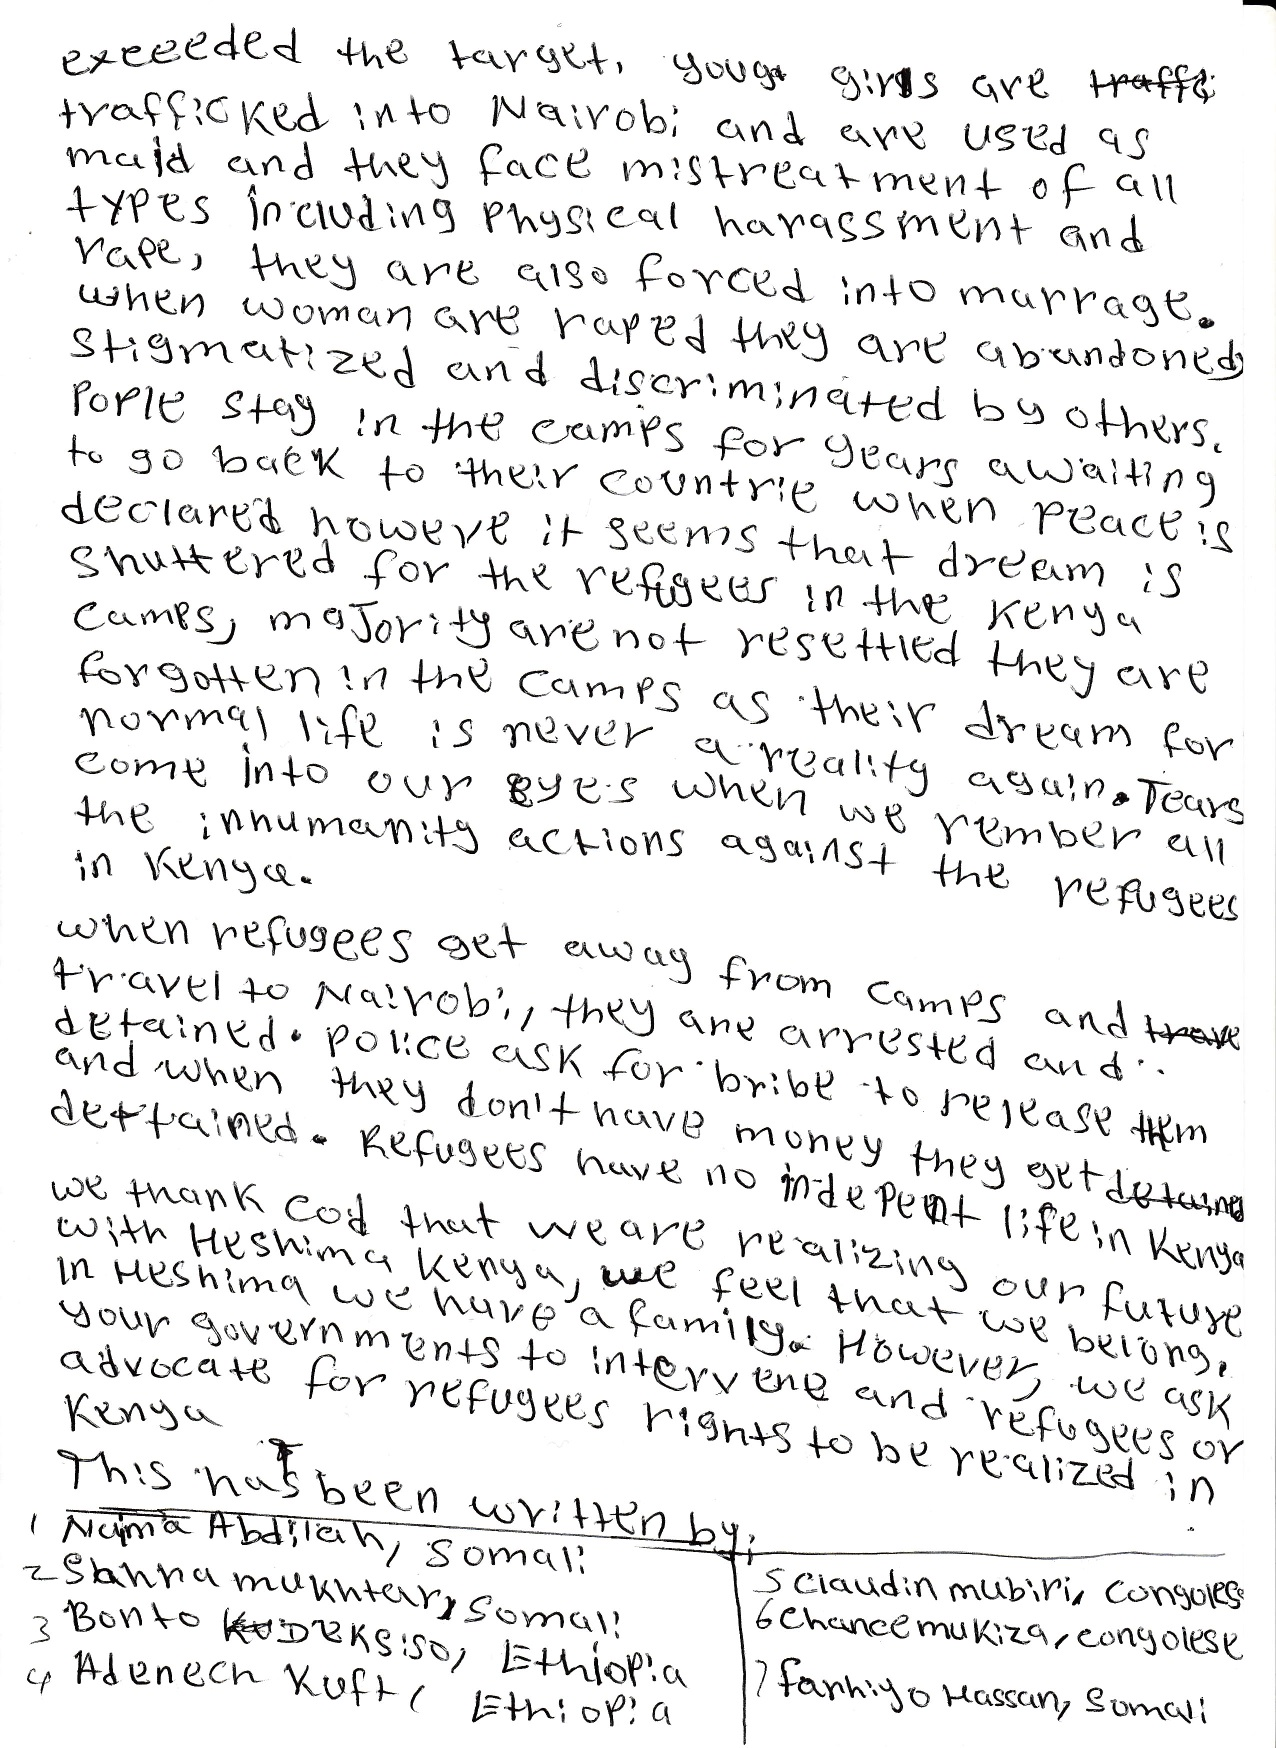 World Refugee Day: Heshima Girls Letter To President Obama (Part 2)